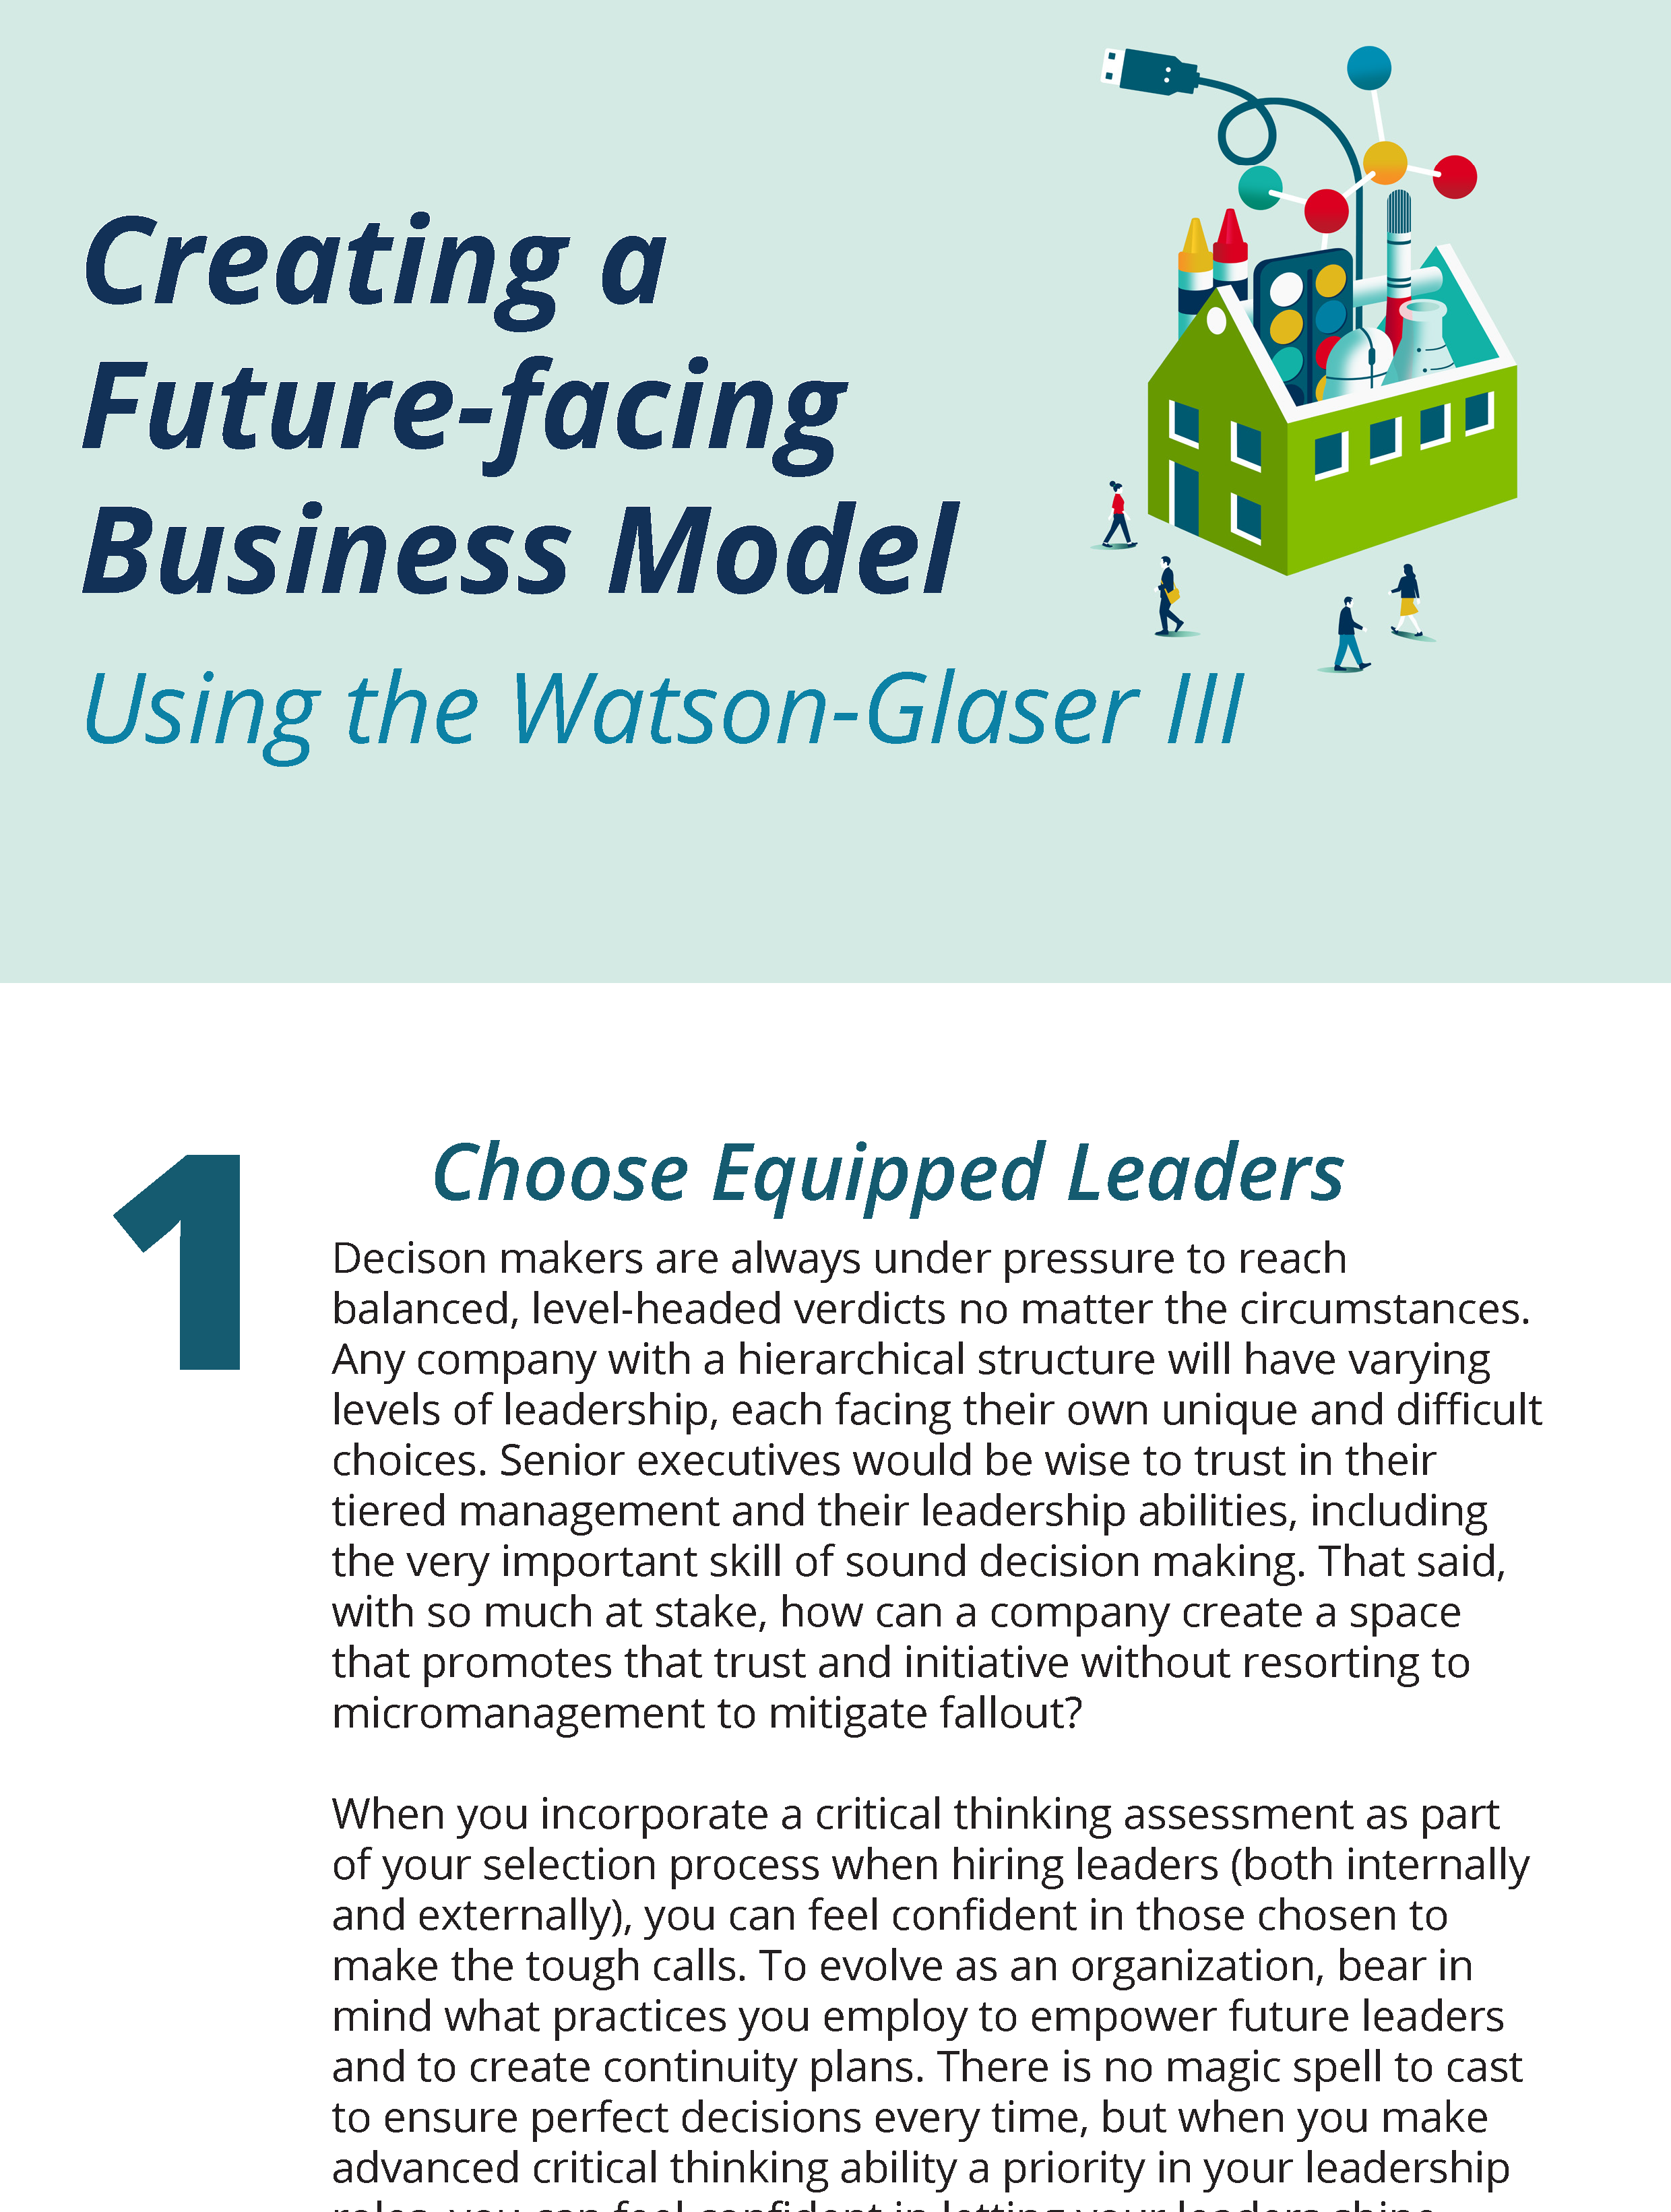 Creating a Future-facing Business Model using the Watson-Glaser III